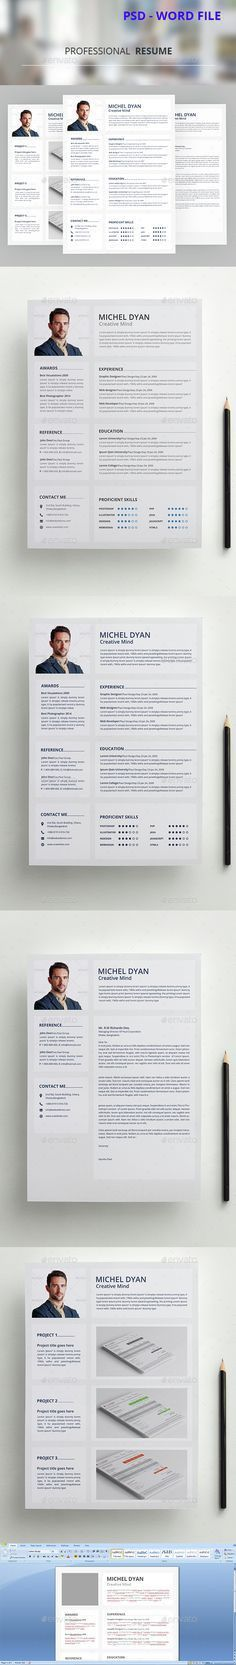 50 Best Minimal Resume Templates - 3 | Resume Design | Pinterest ...